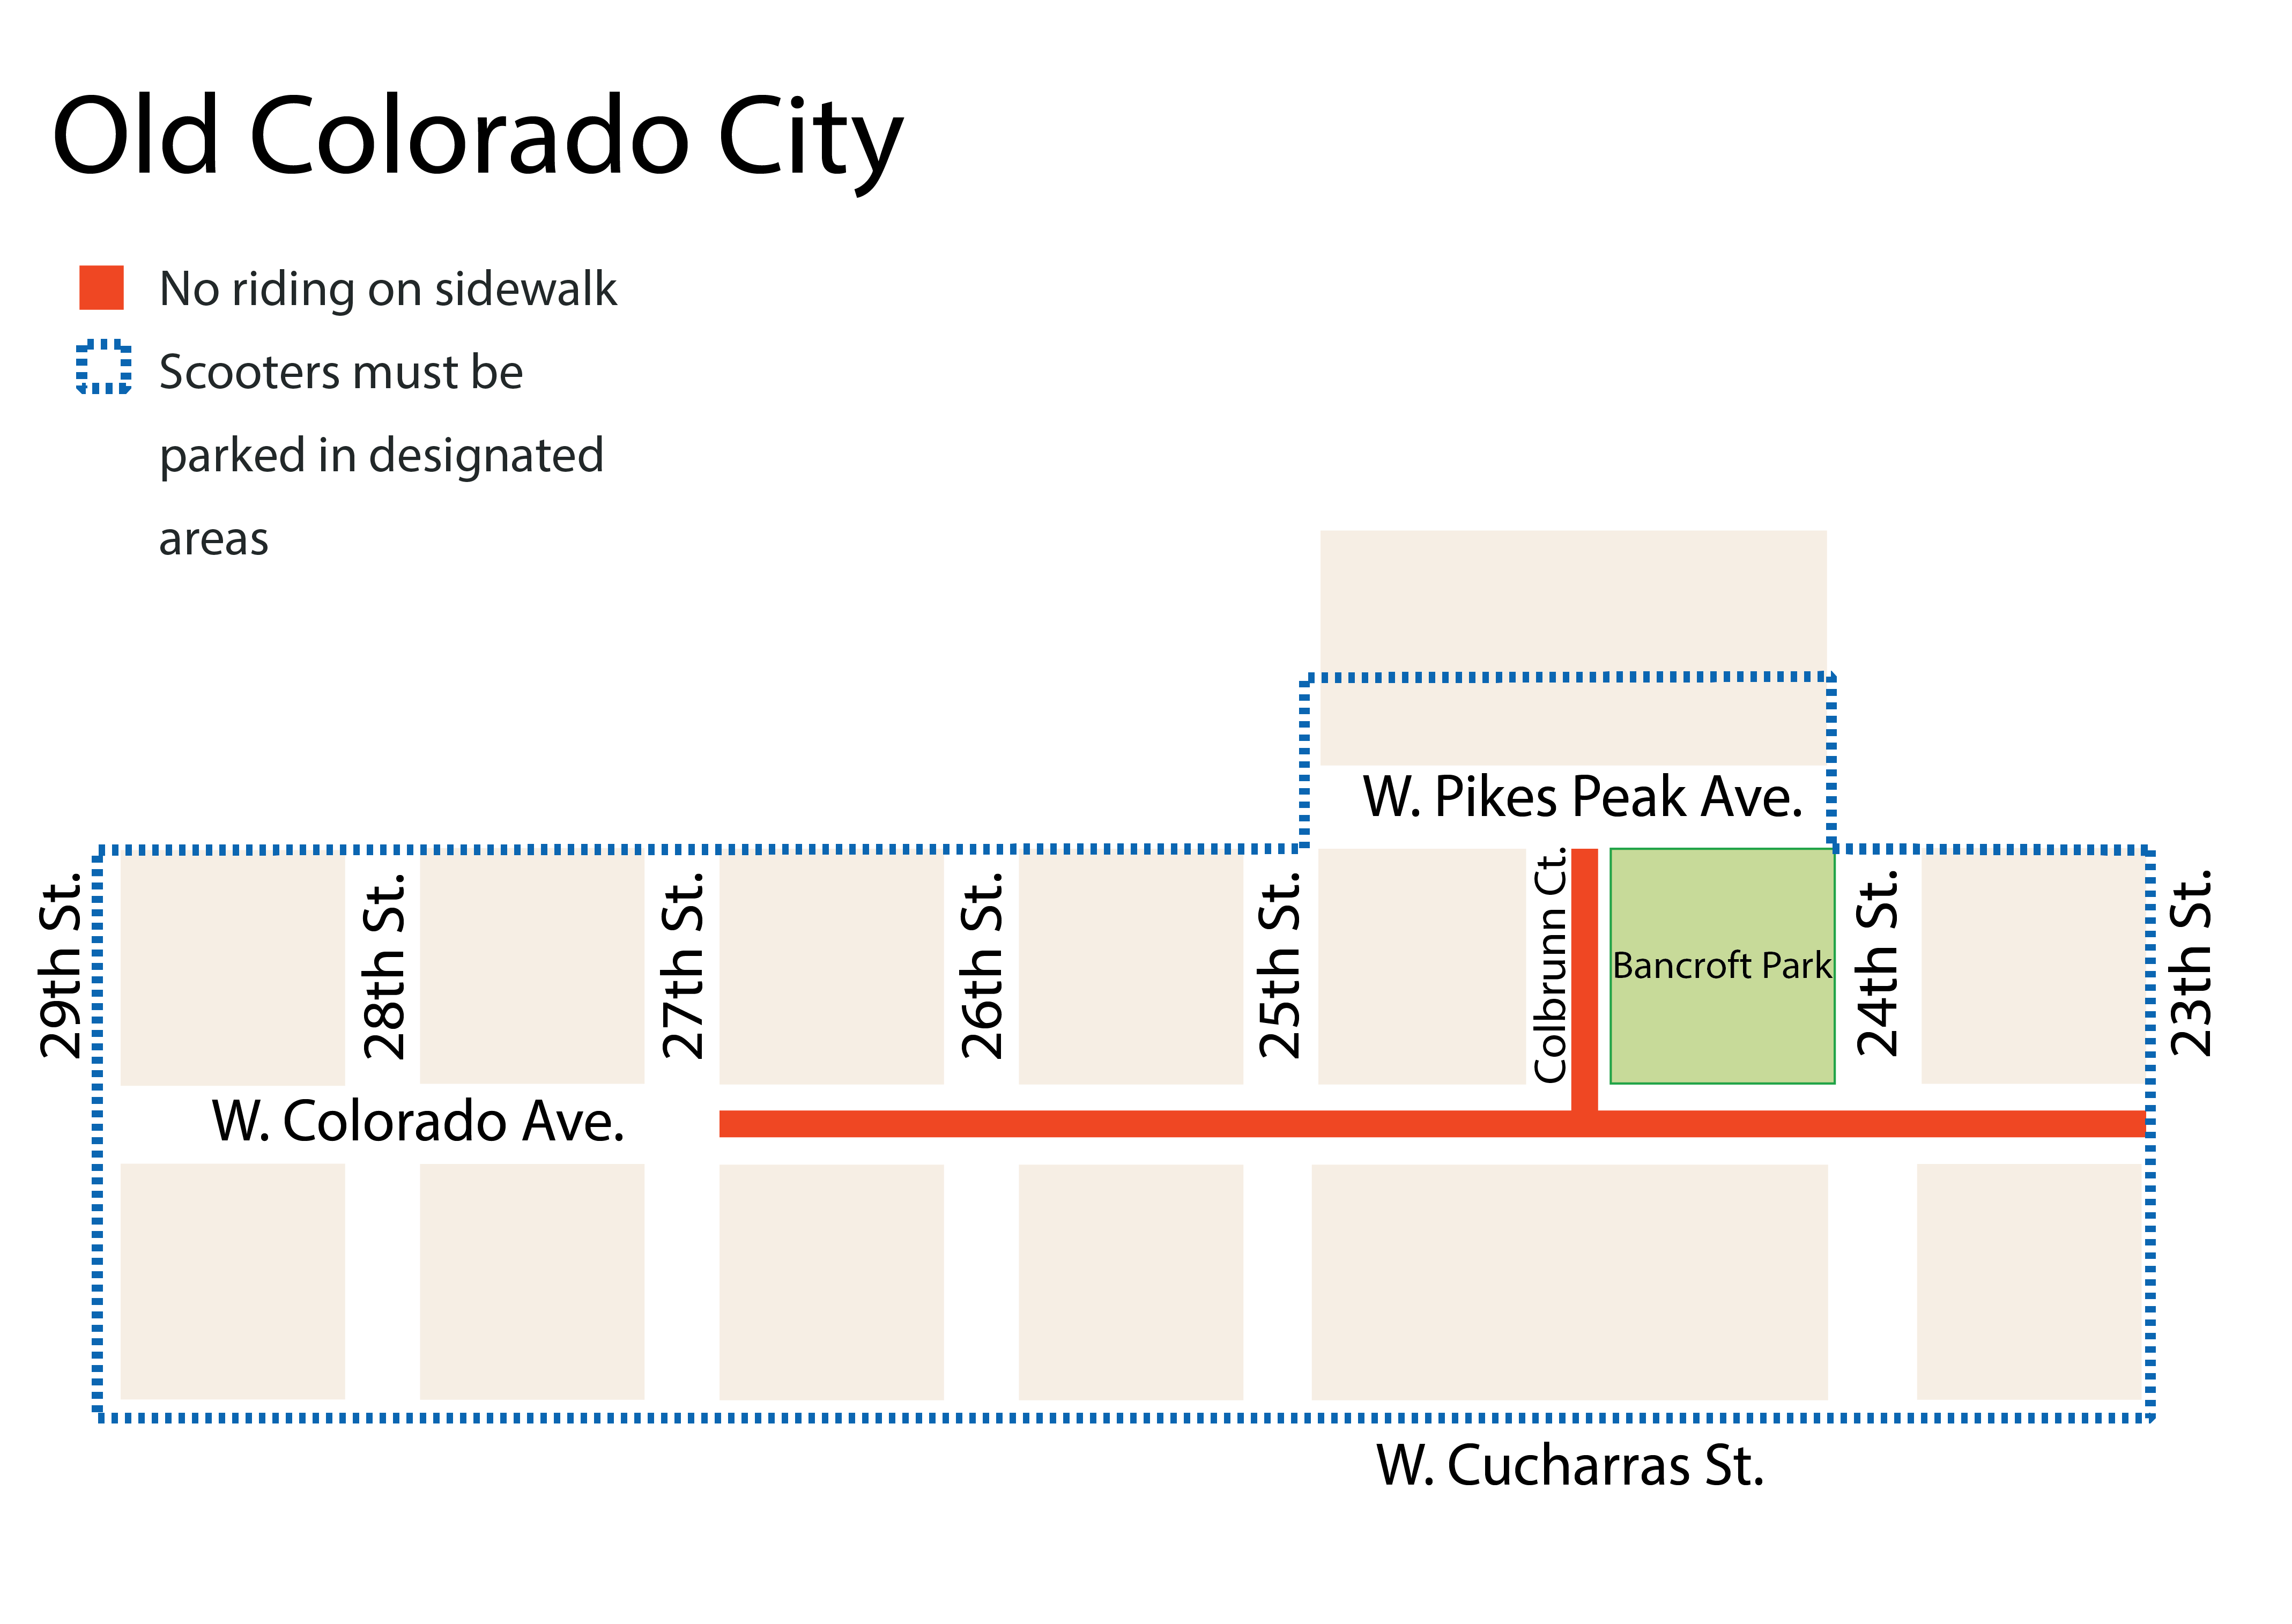 Map of Old Colorado City where scooters cannot be ridden on sidewalks and must be parked in designated areas